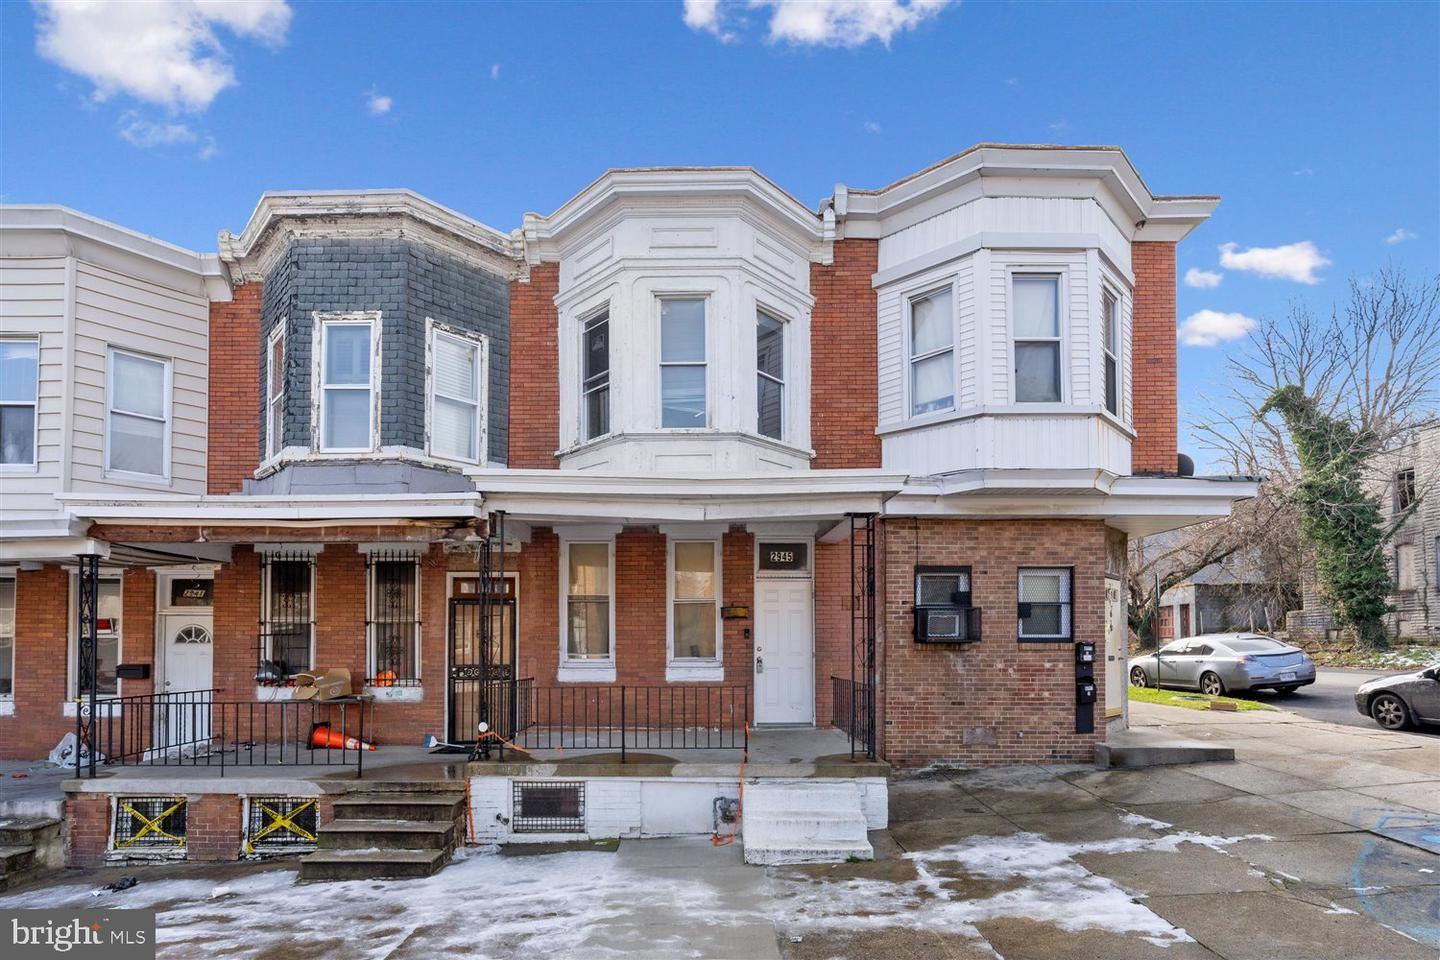 2945 WESTWOOD AVE, Baltimore, MD 21216 - MLS#: MDBA534874